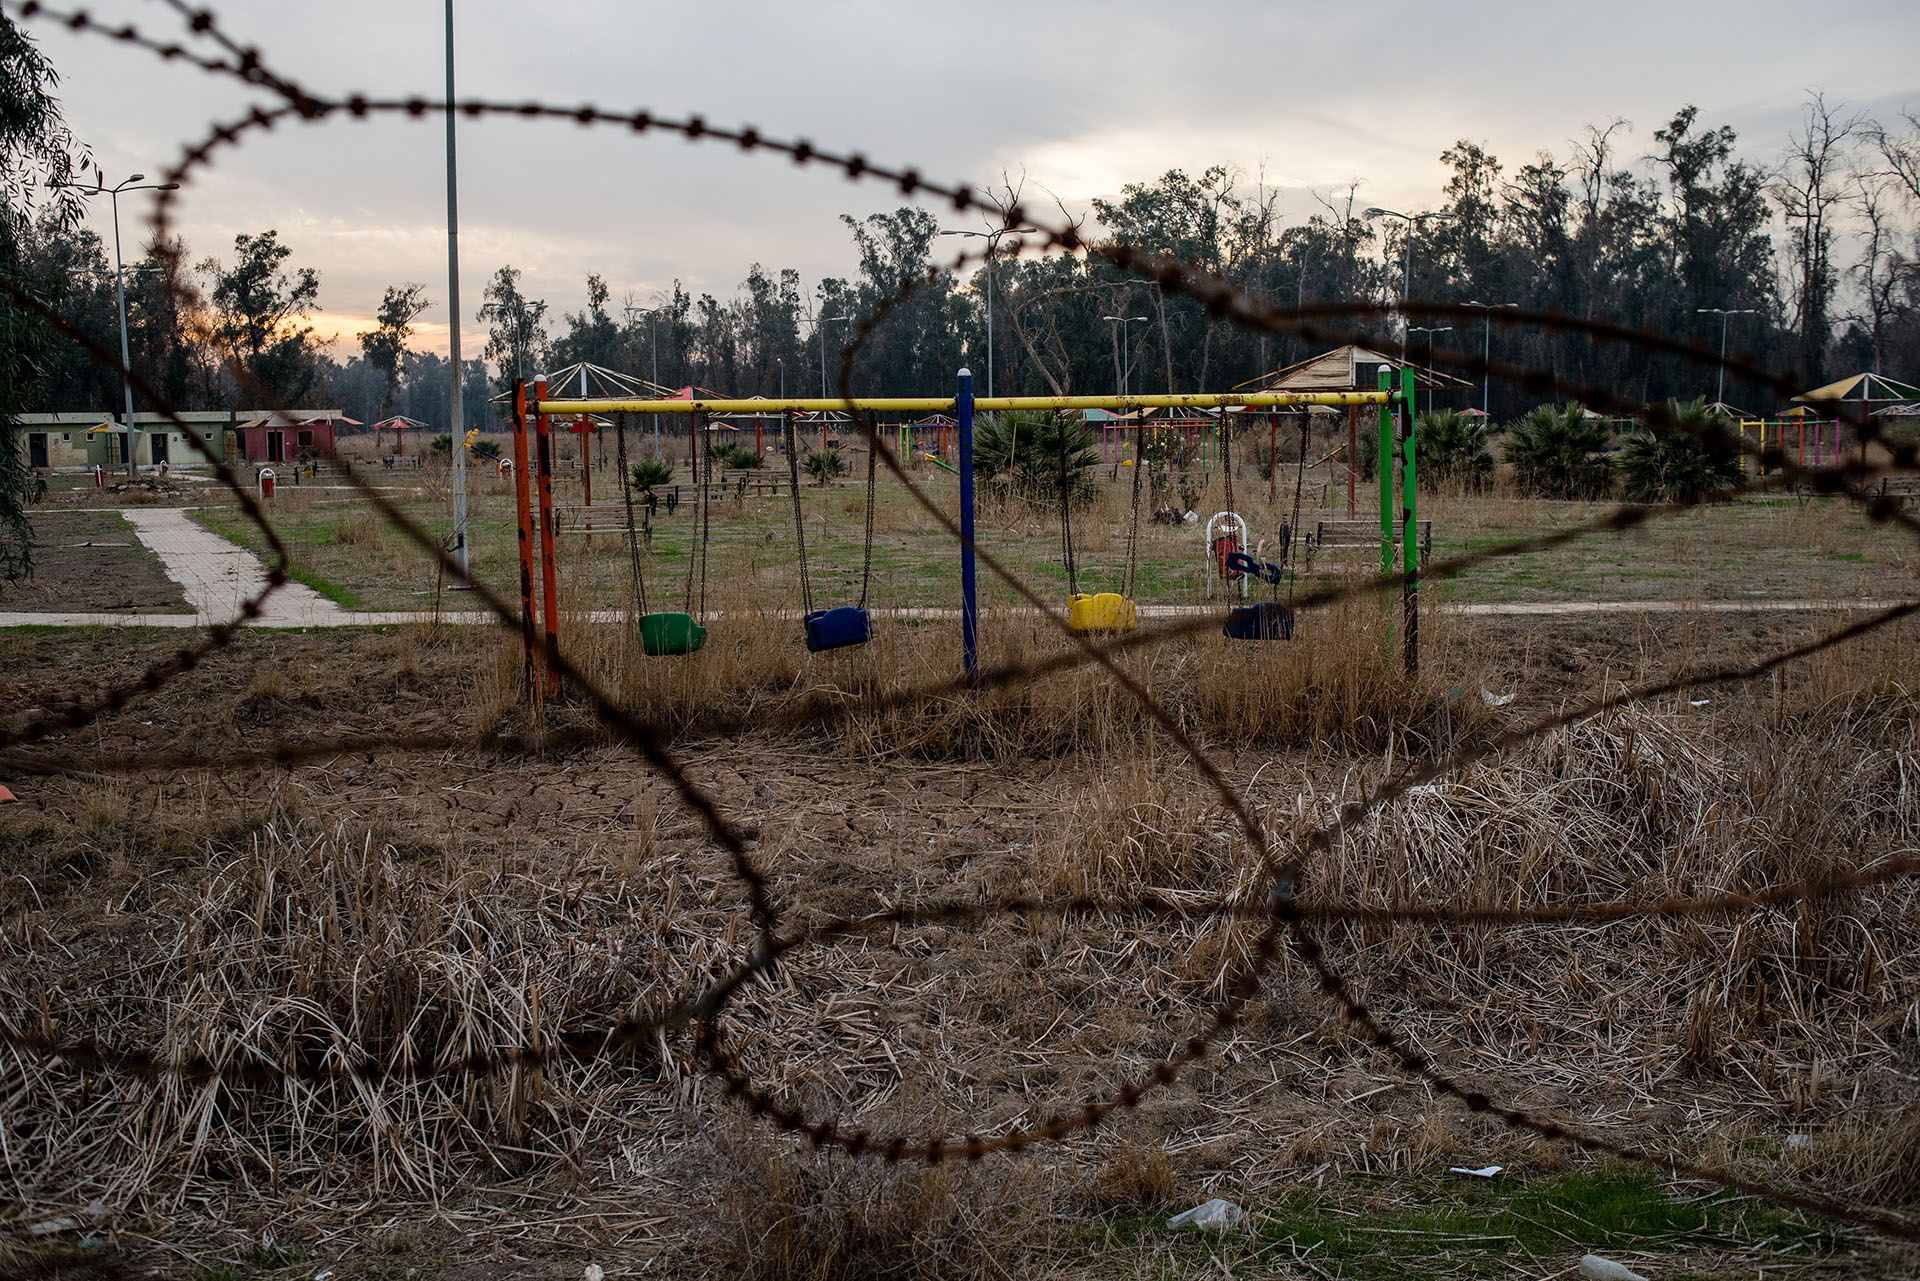 Swings sit empty in a playground city where two disabled boys were found wandering the grounds alone. (Alex Potter/GroundTruth)